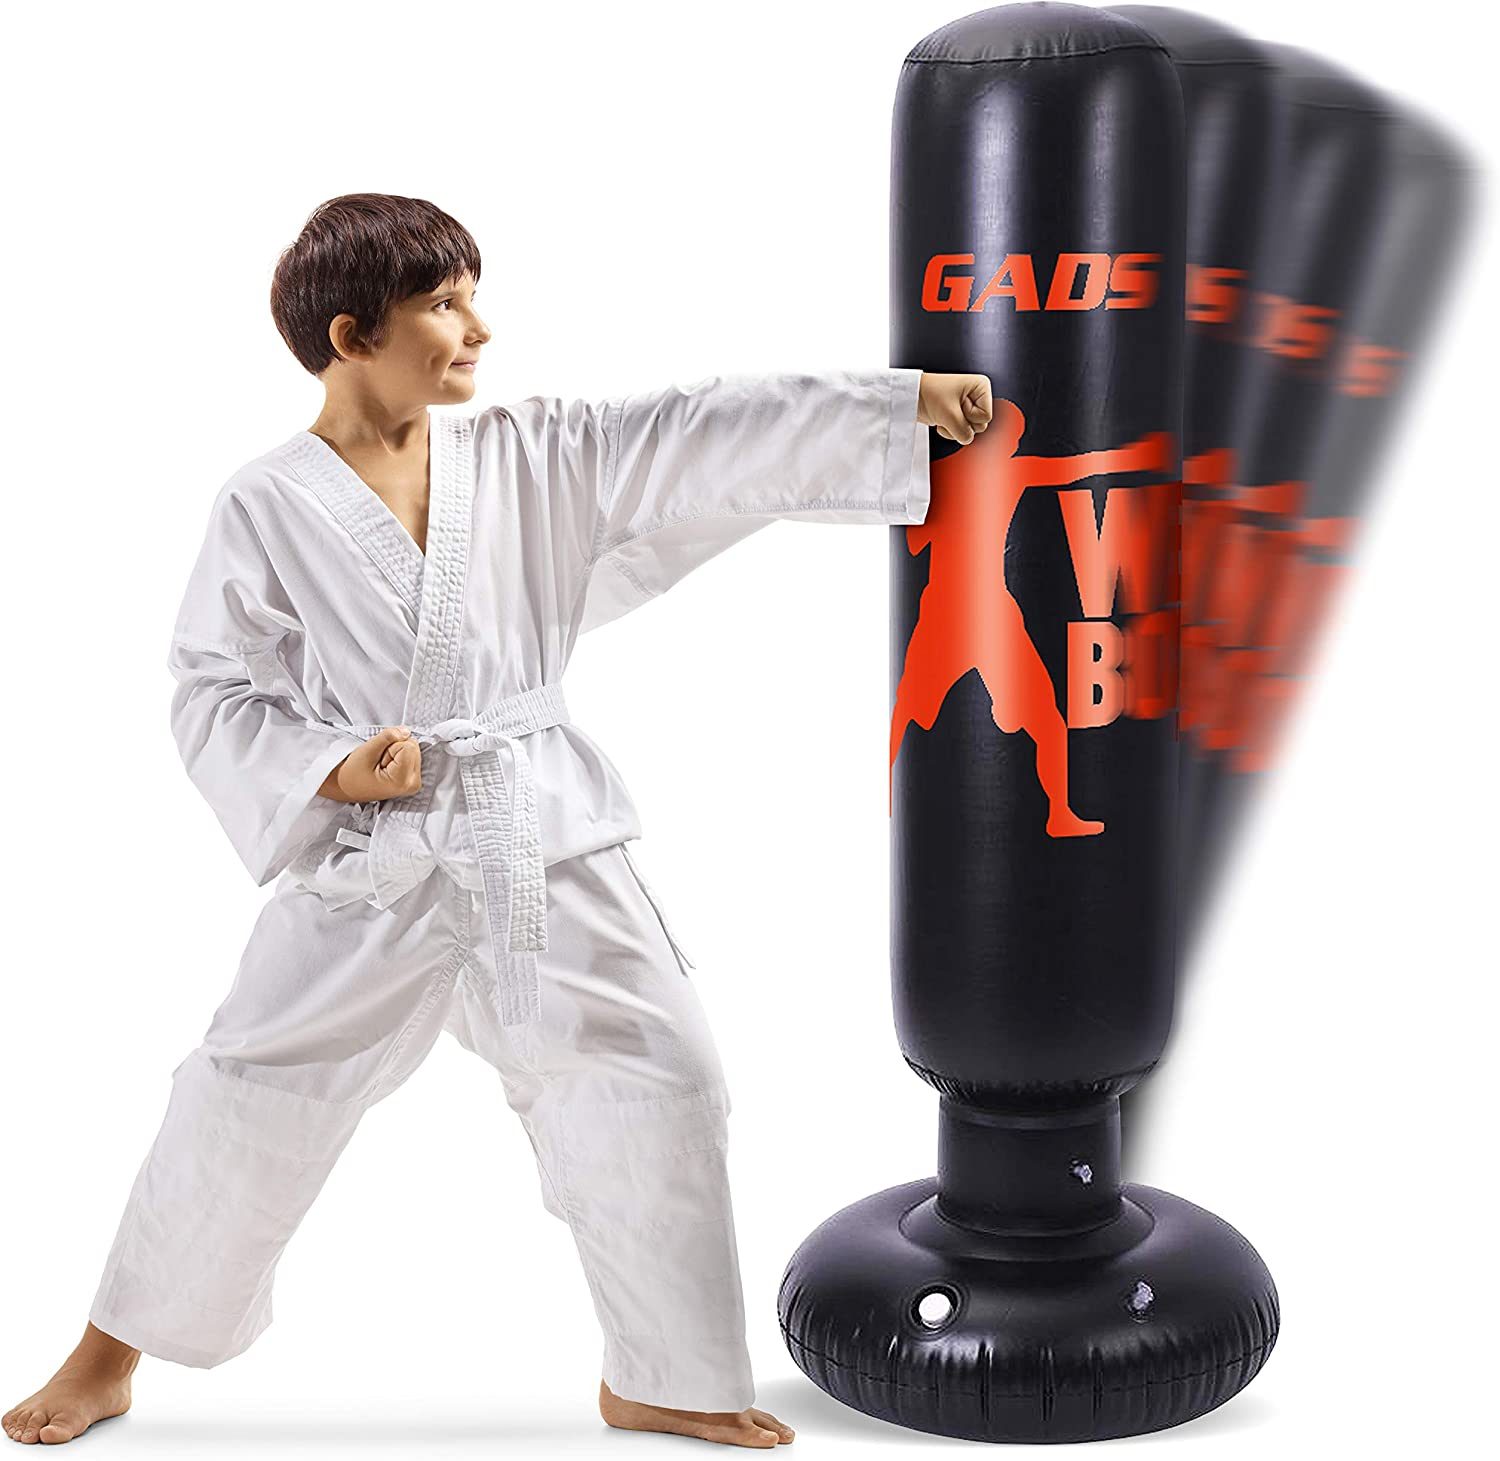 Gads Punching Bag for Kids | Premium Inflatable Bag for Immediate Bounce-Back | 62 inches Free Standing Bag for Boxing, Kickboxing, Karate & Stress Relief